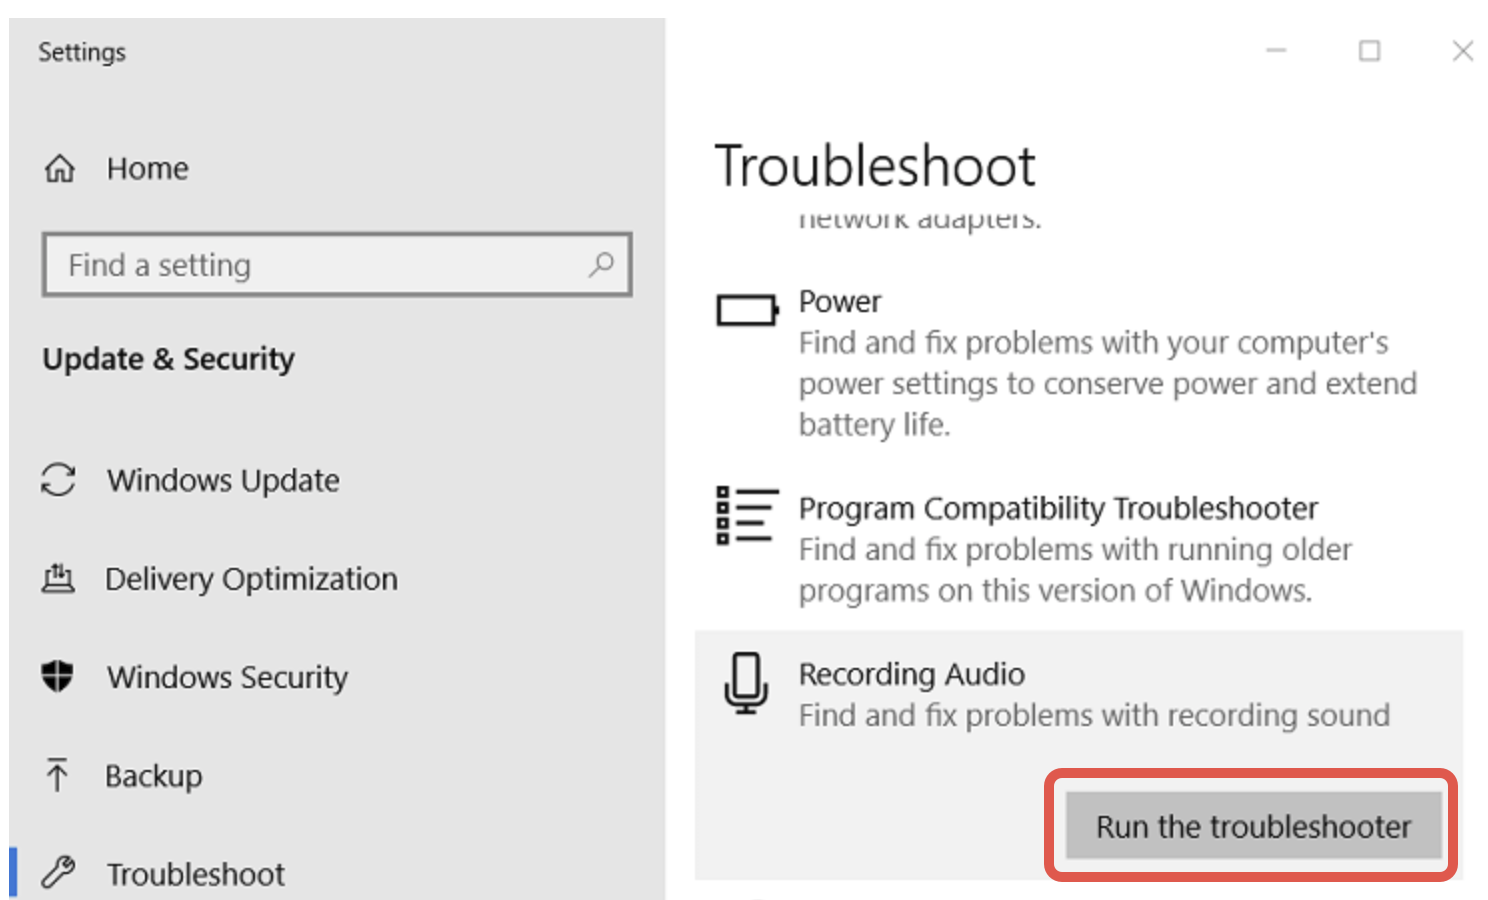 Run the troubleshooter for recording audio